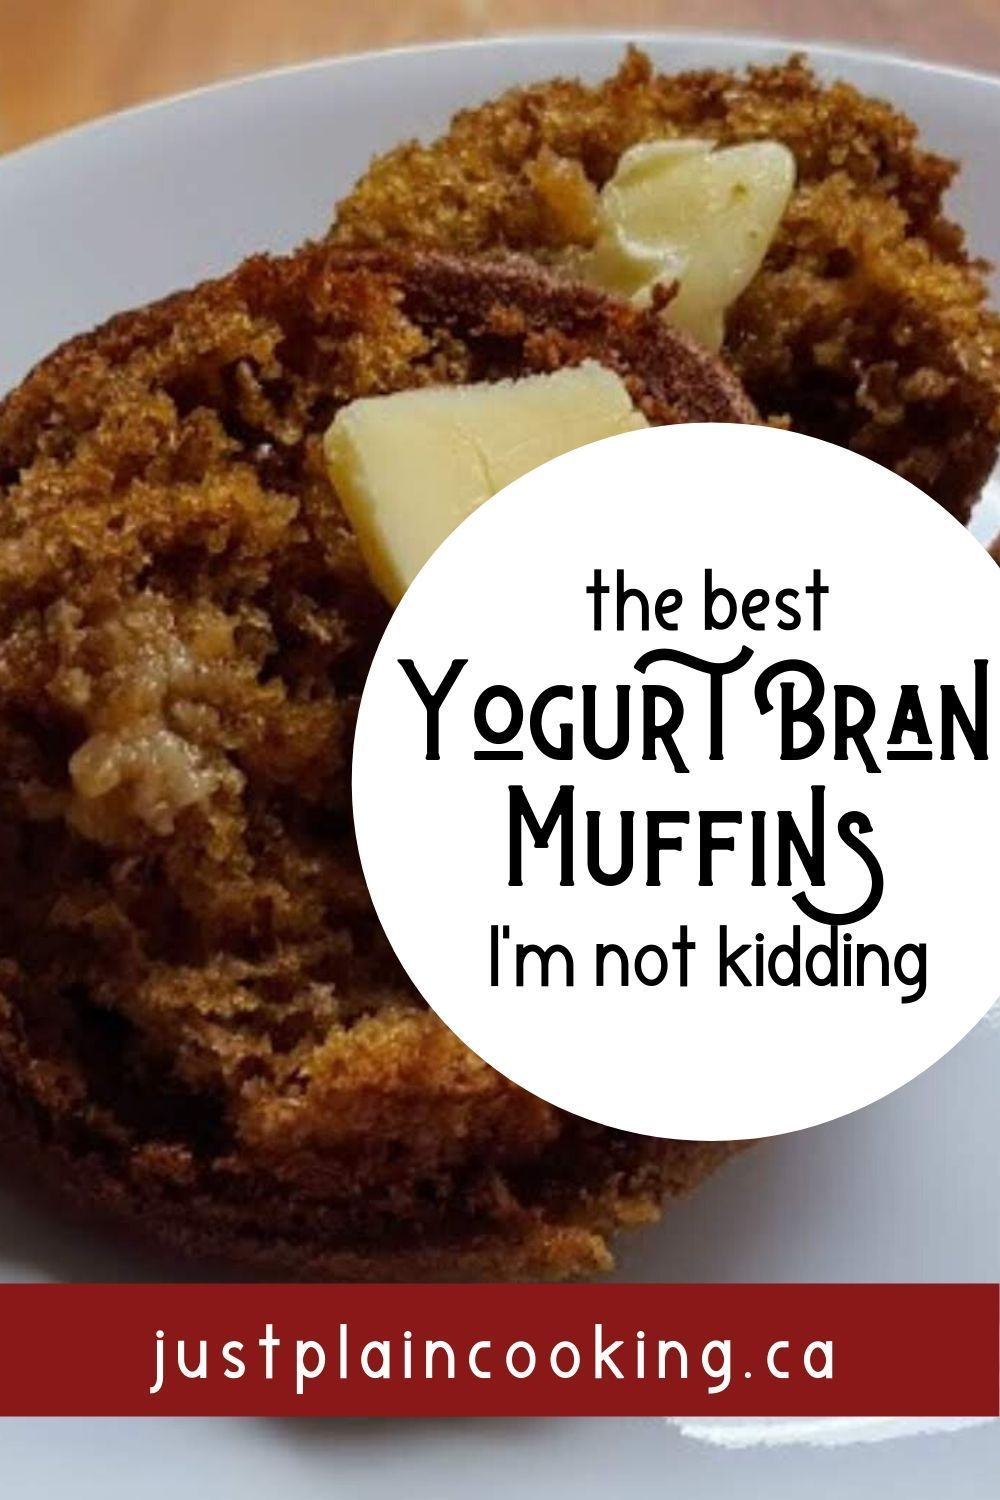 Janet's Yogurt Bran Muffins are light, moist, full of flavor, and quick to make. Healthy and delicious, they will be a new favourite. #muffins #bran #healthy #recipes #breakfast